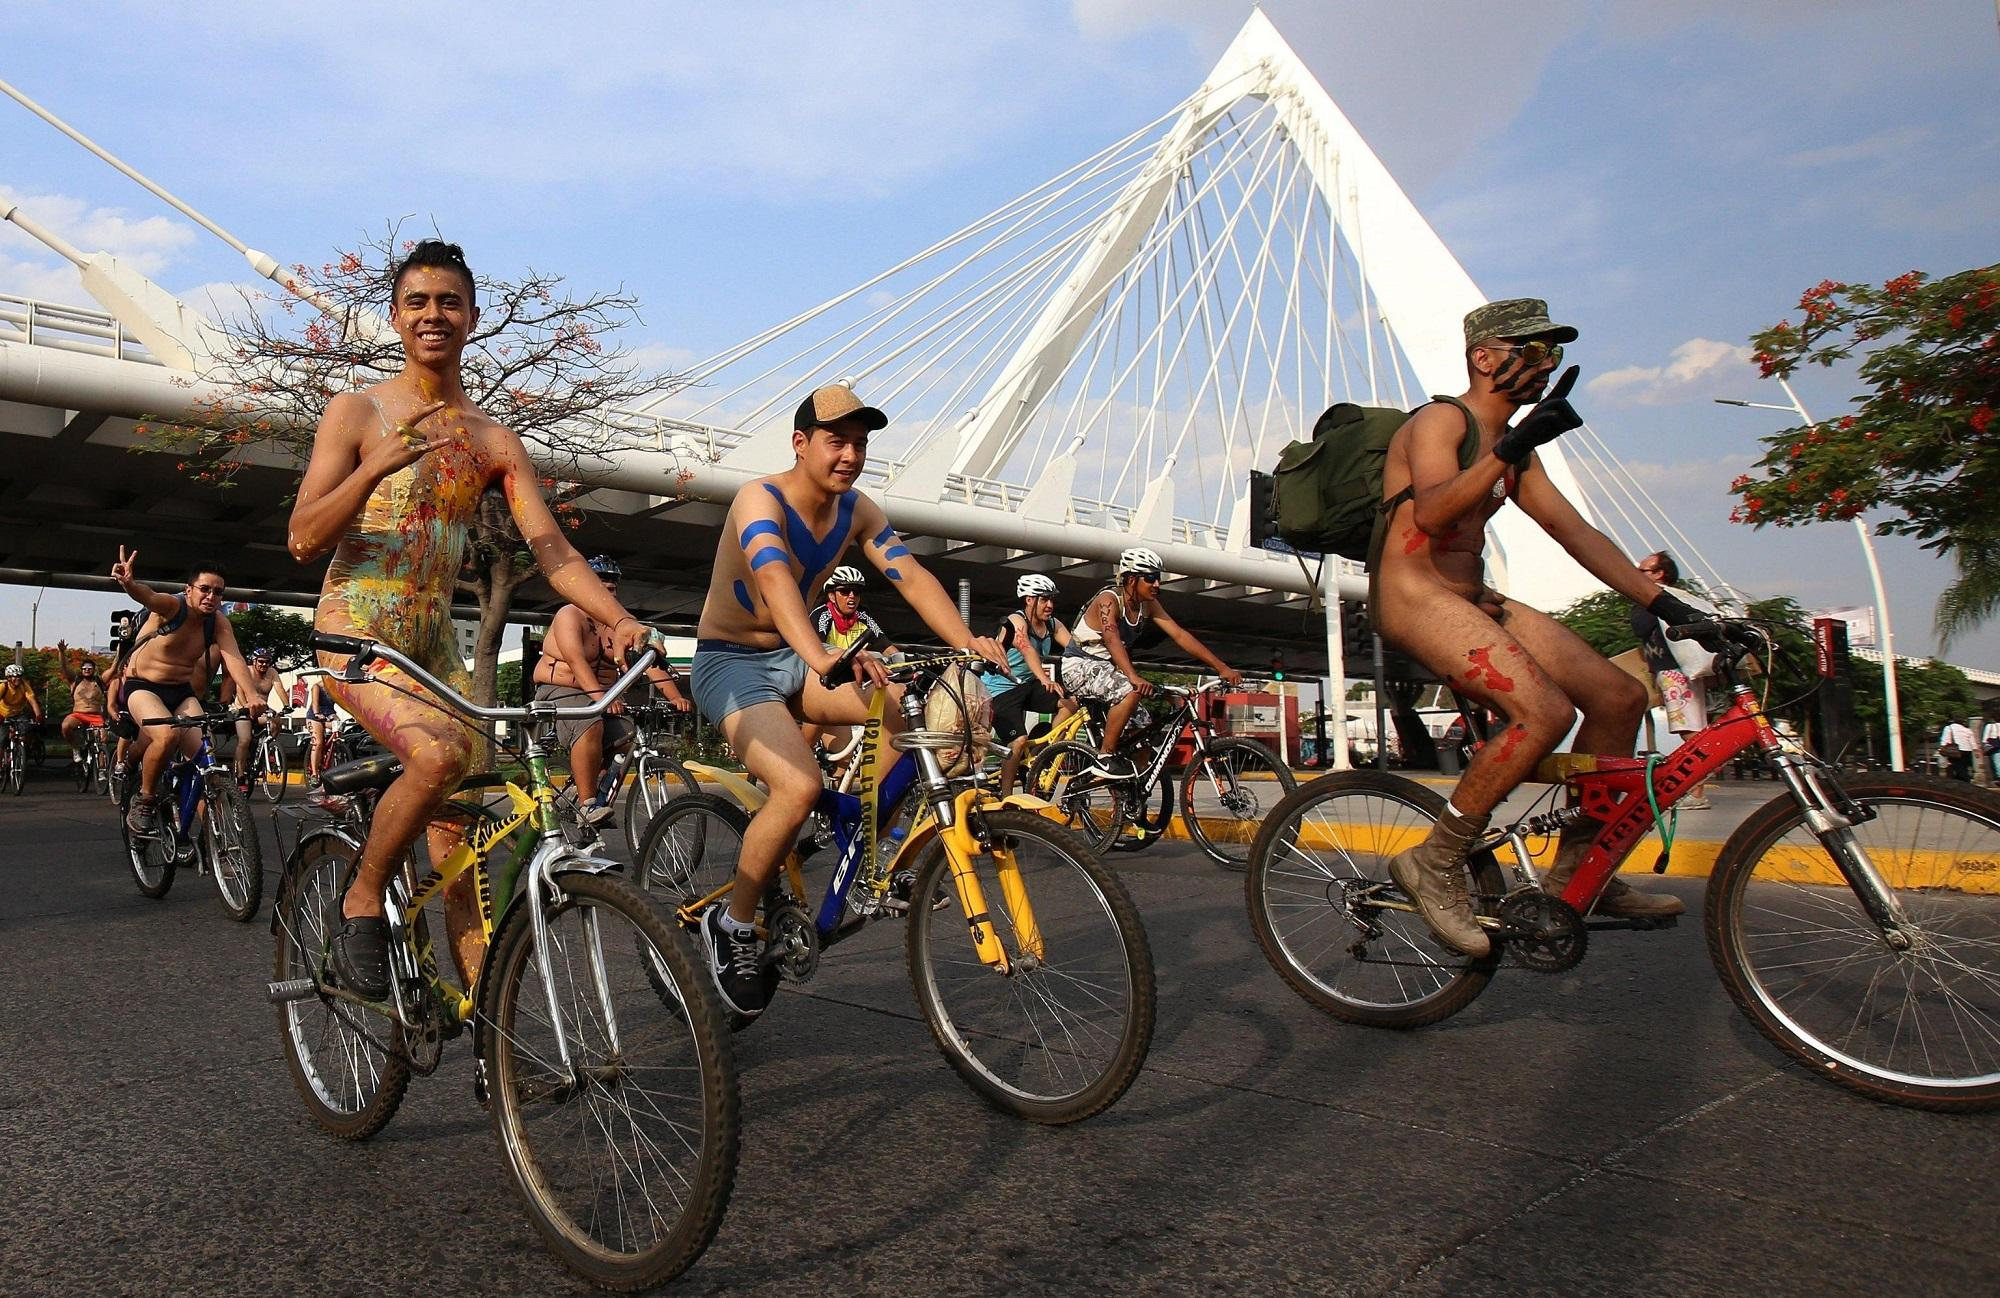 Nudi per l ambiente, ecco il World Naked Bike Ride 2017 a Guadalajara